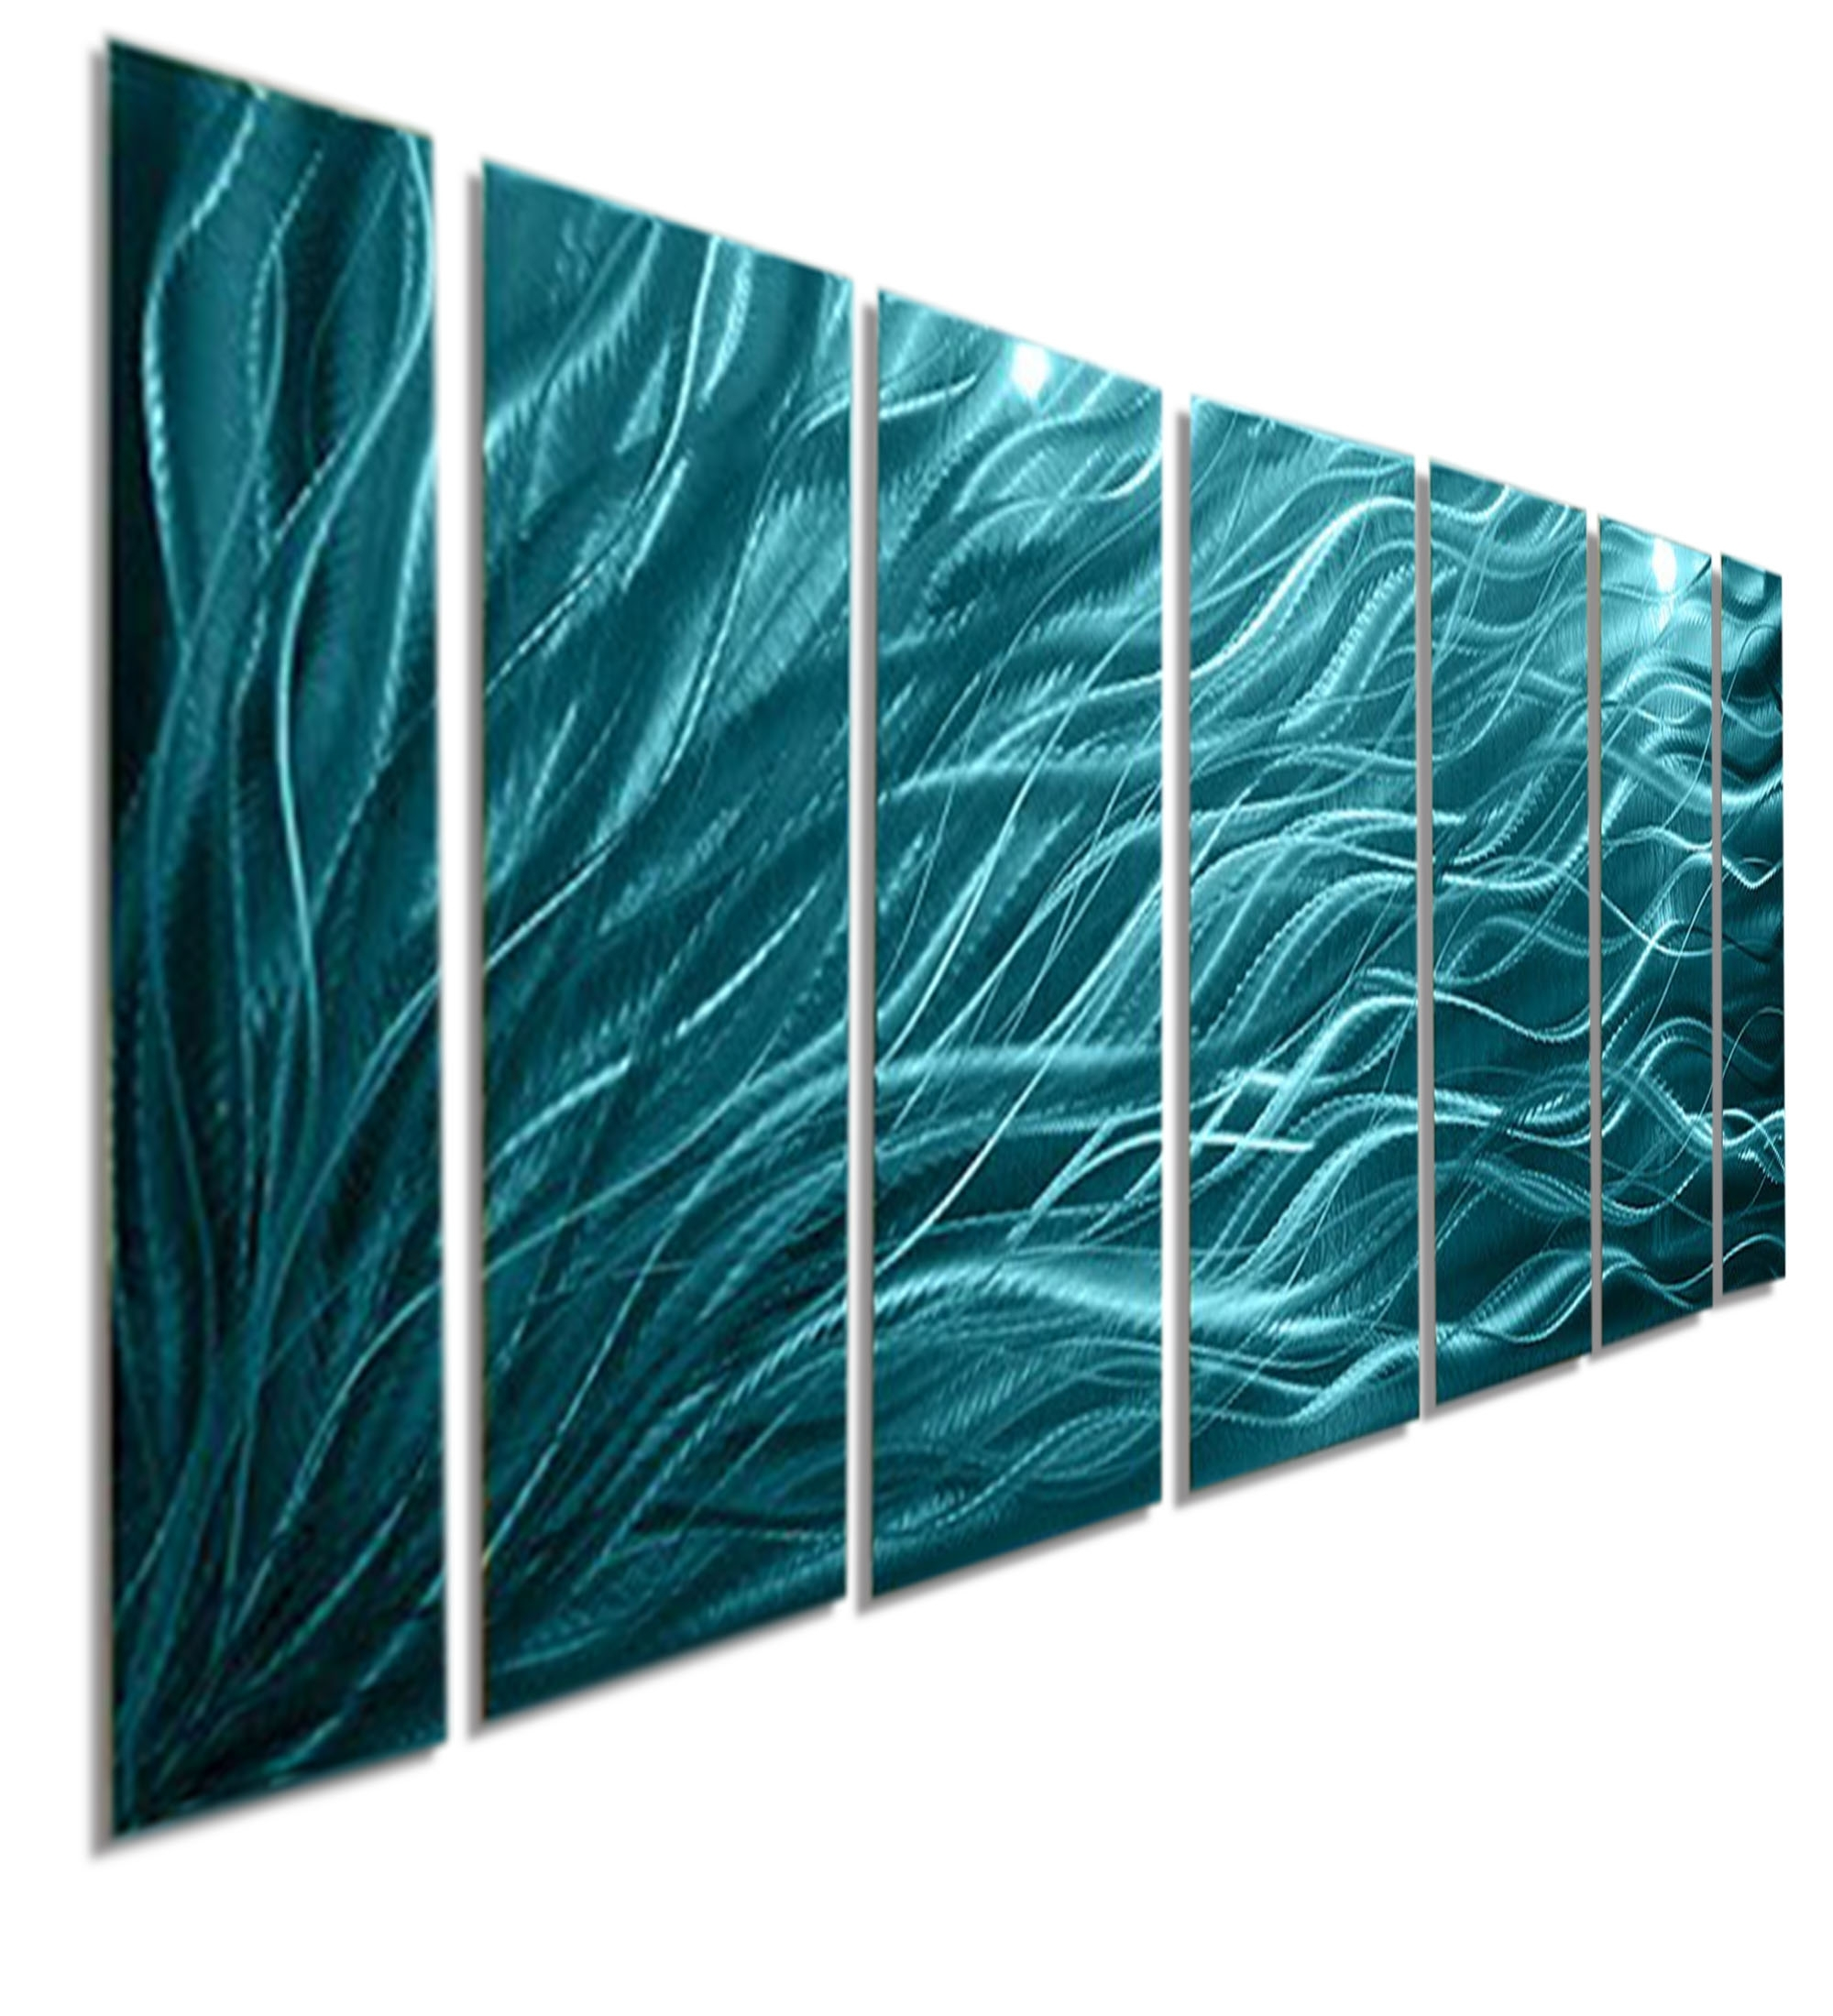 Rays Of Hope Aqua – Large Modern Abstract Metal Wall Artjon Throughout Newest Aqua Abstract Wall Art (Gallery 16 of 20)